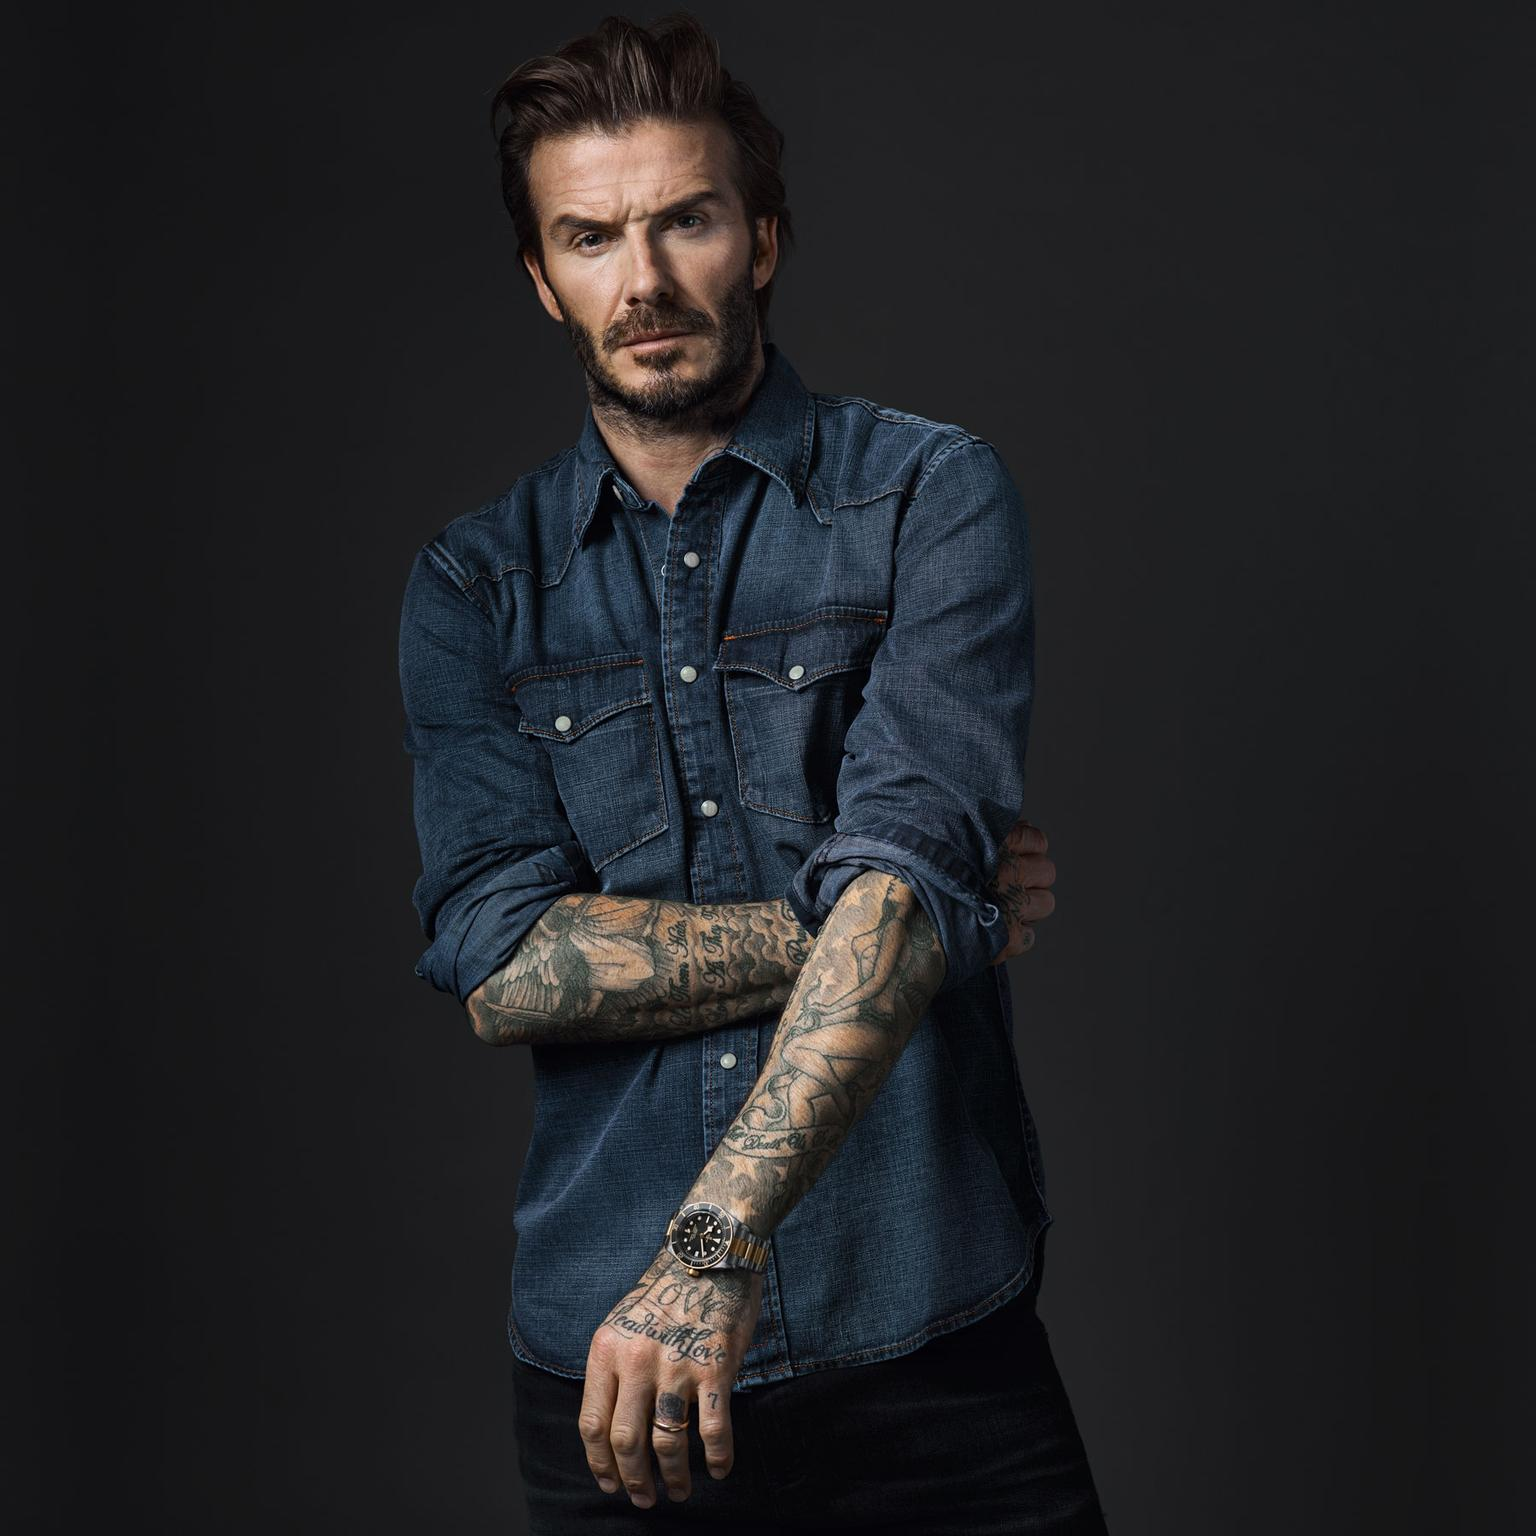 Tudor Born to Dare watch campaign featuring David Beckham in a denim shirt